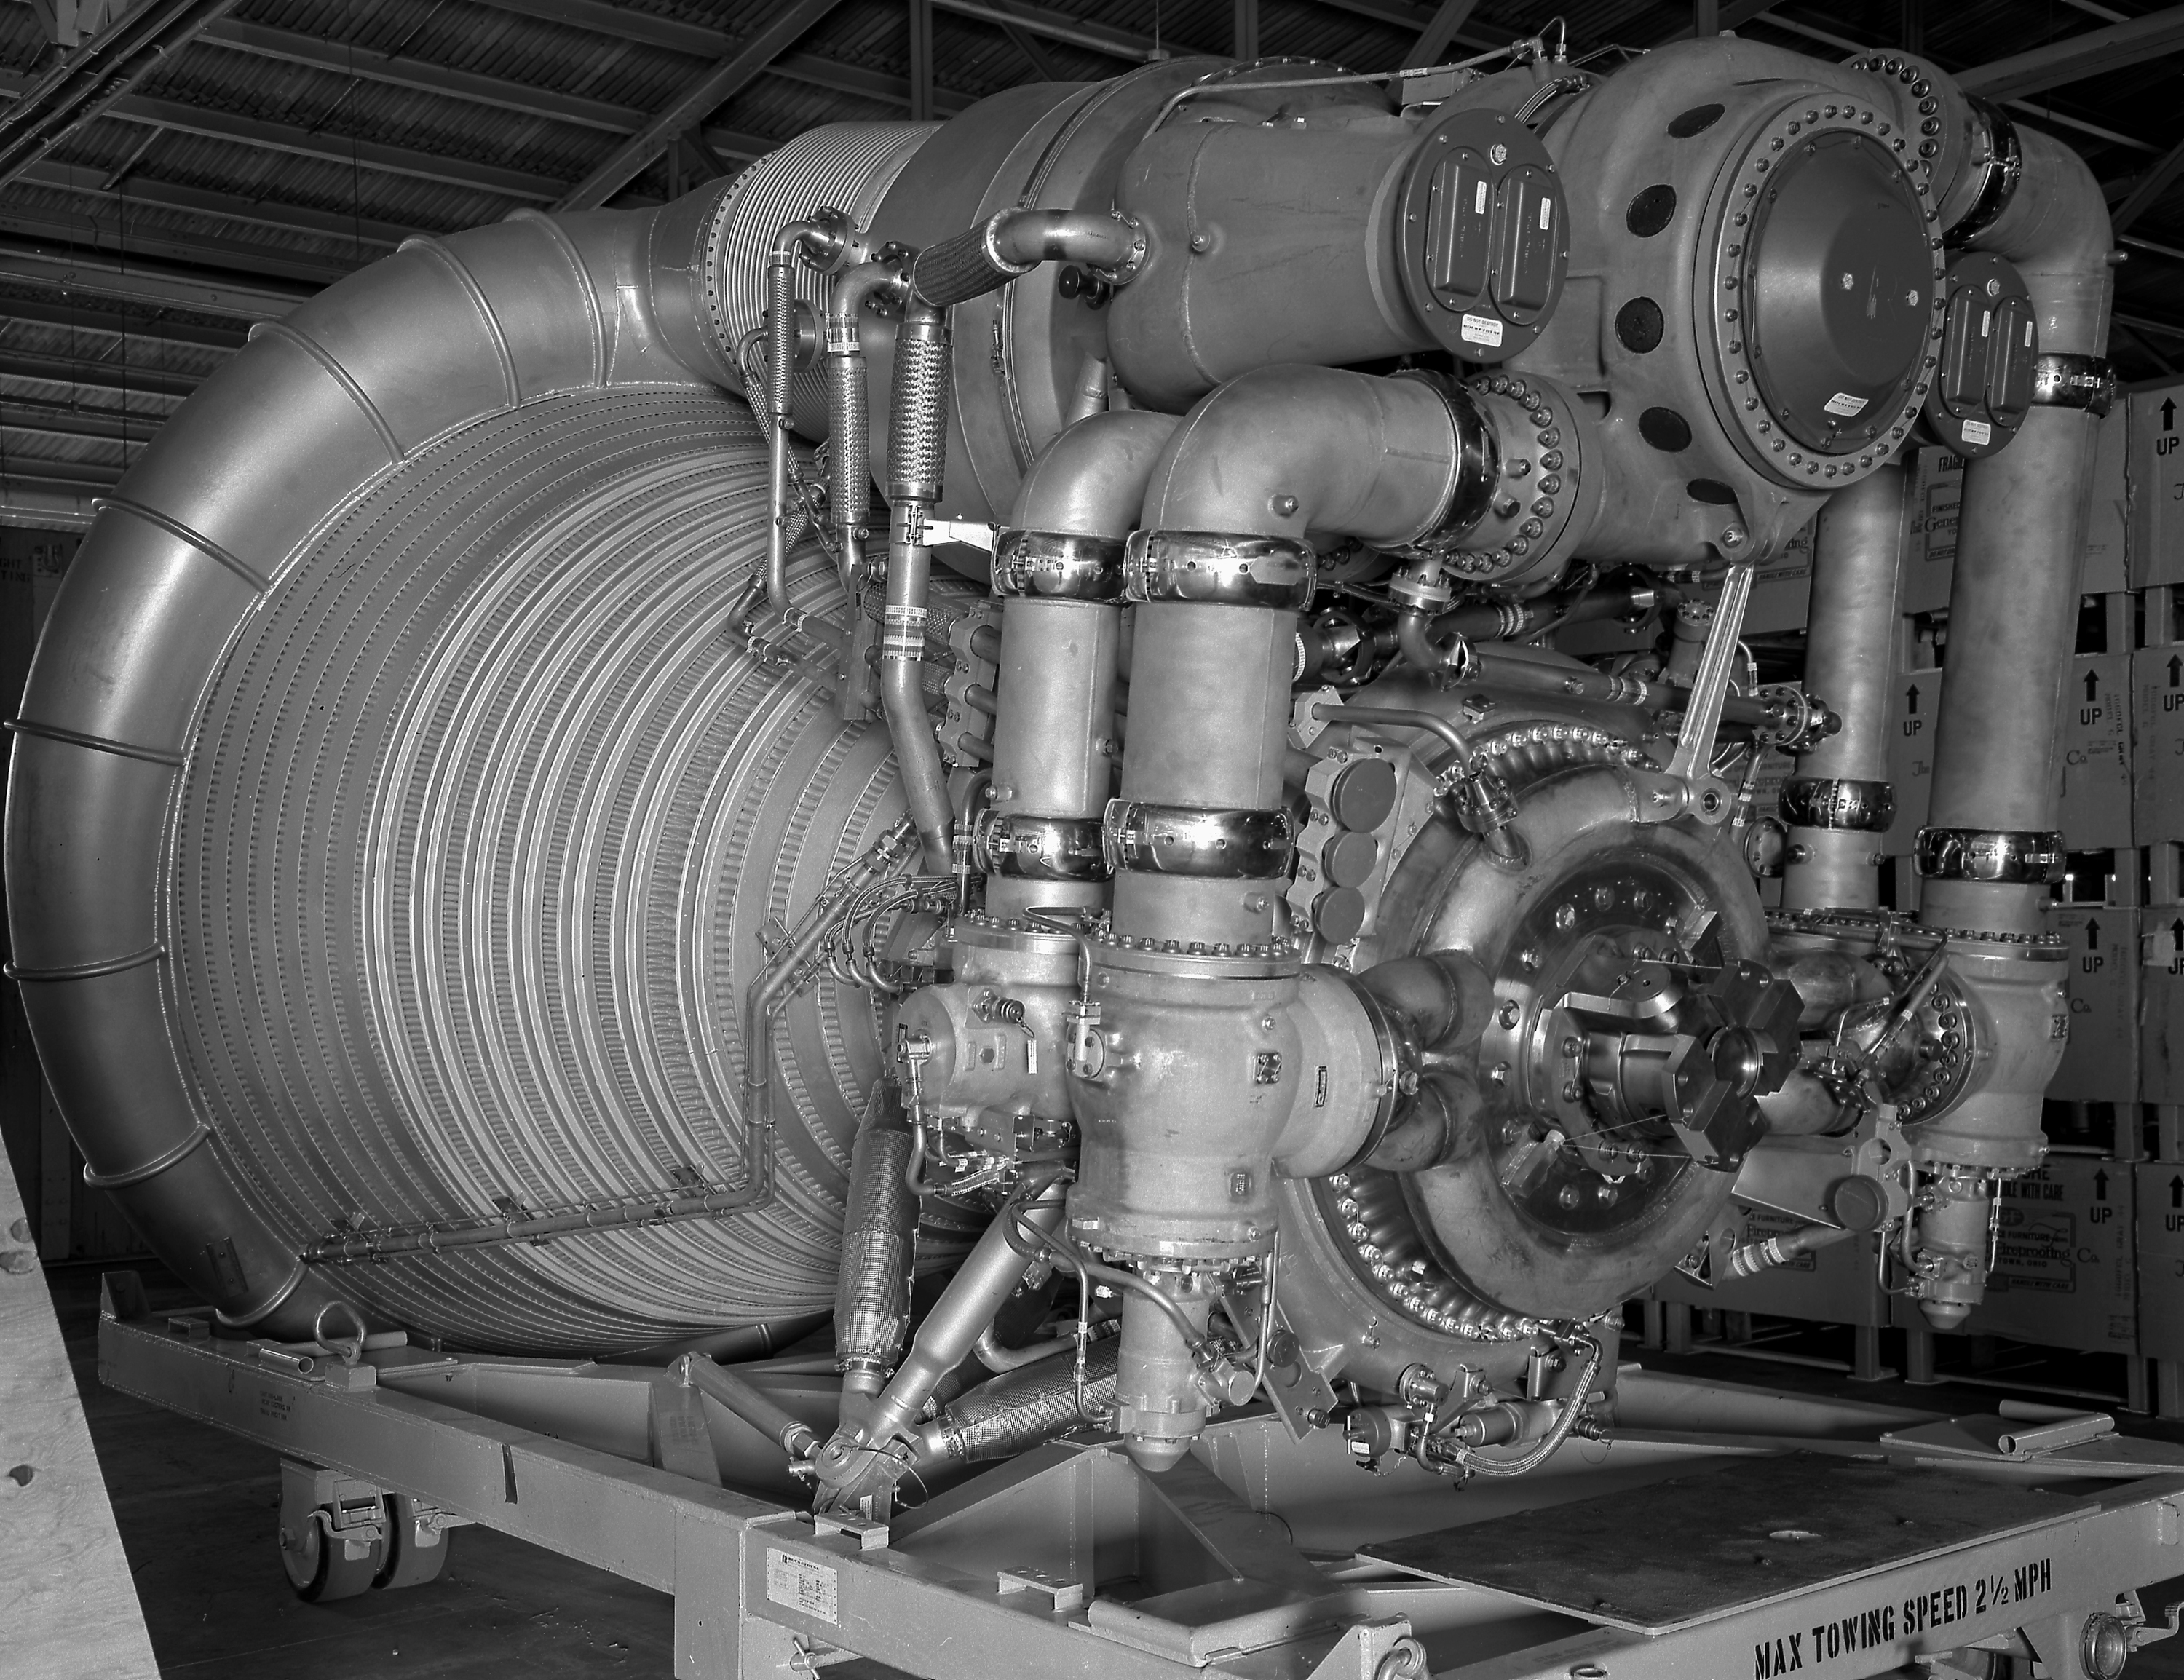 Closeup of single F-1 engine showing parts inside